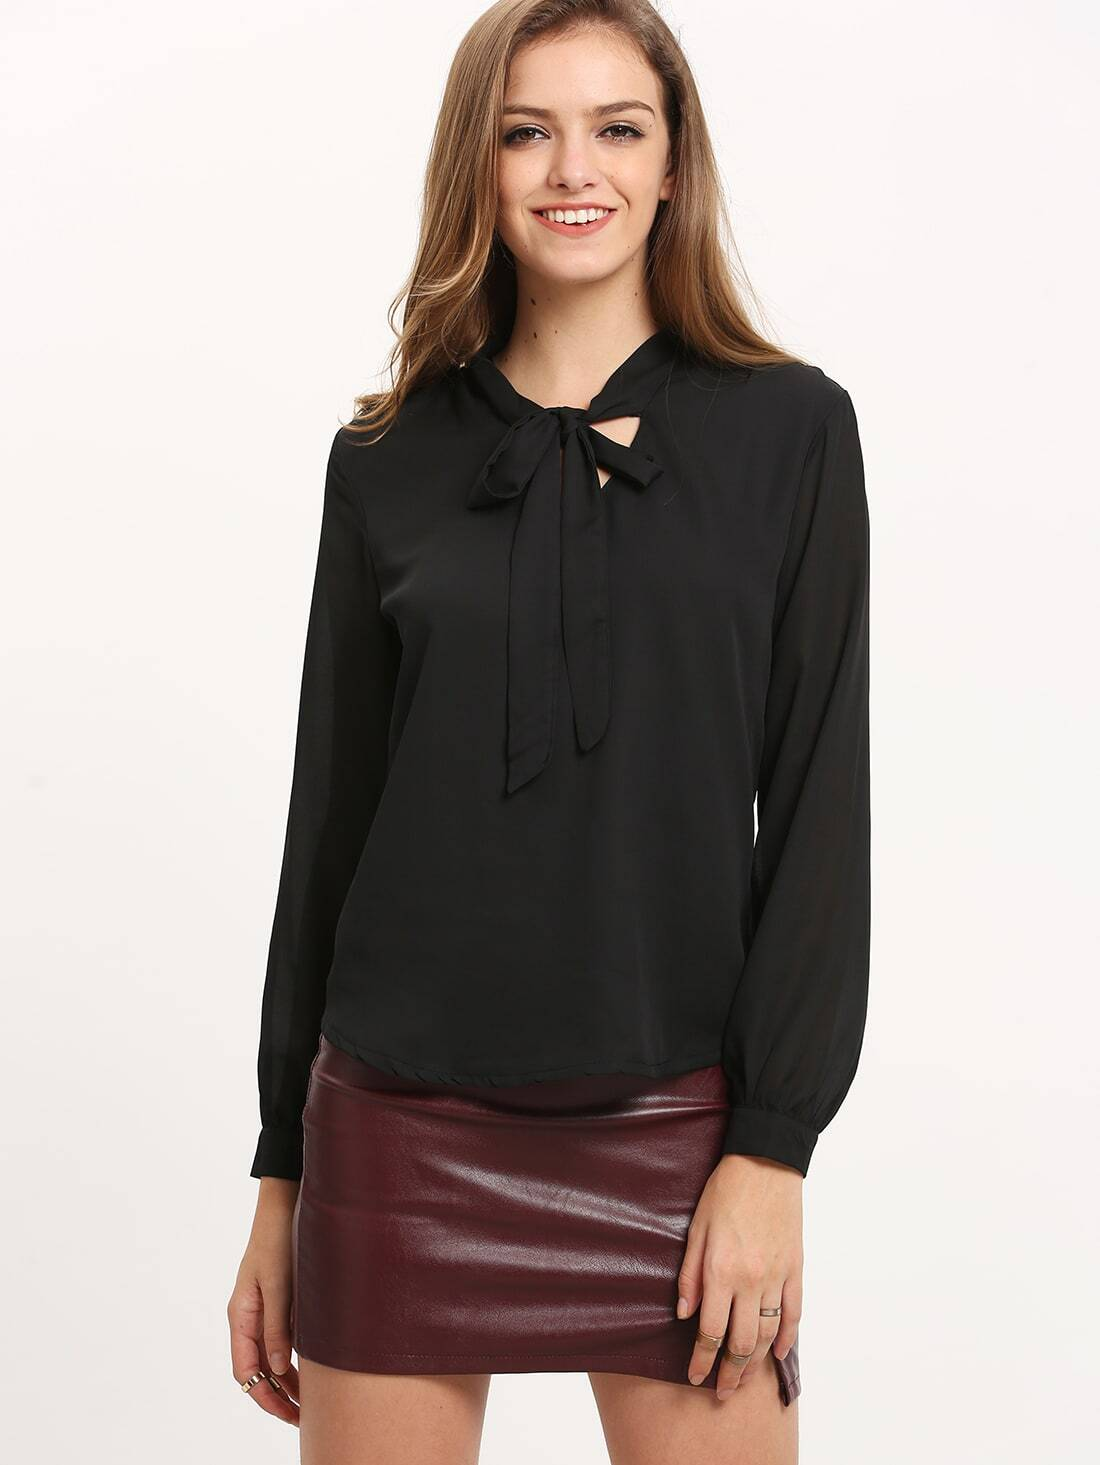 Find great deals on eBay for chiffon blouse long sleeve. Shop with confidence.